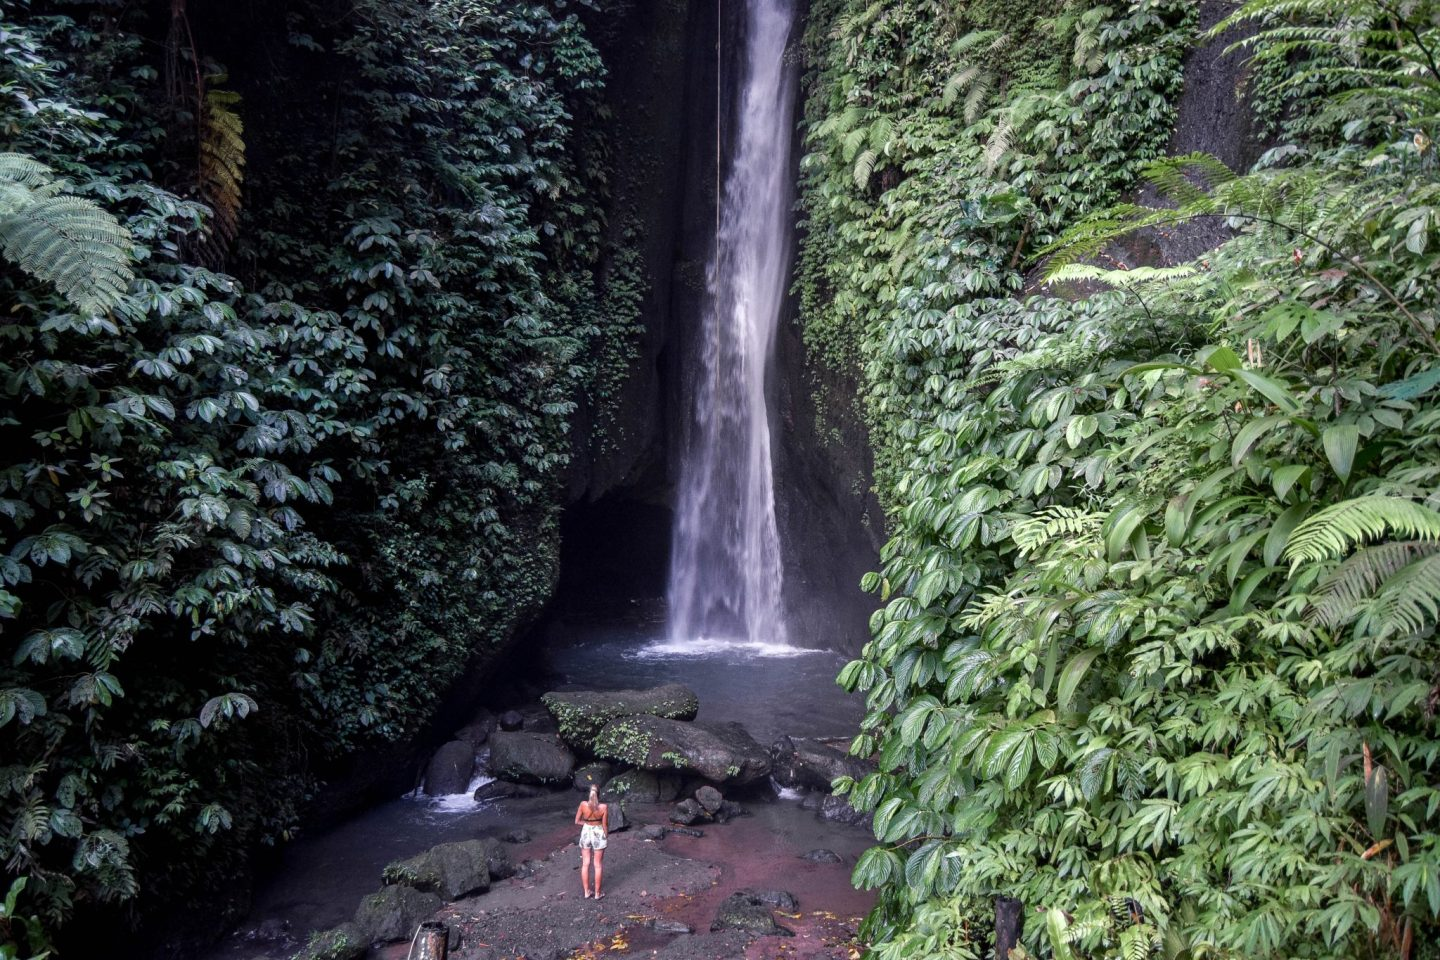 Leke Leke Waterfall Bali – Our Own Private Falls